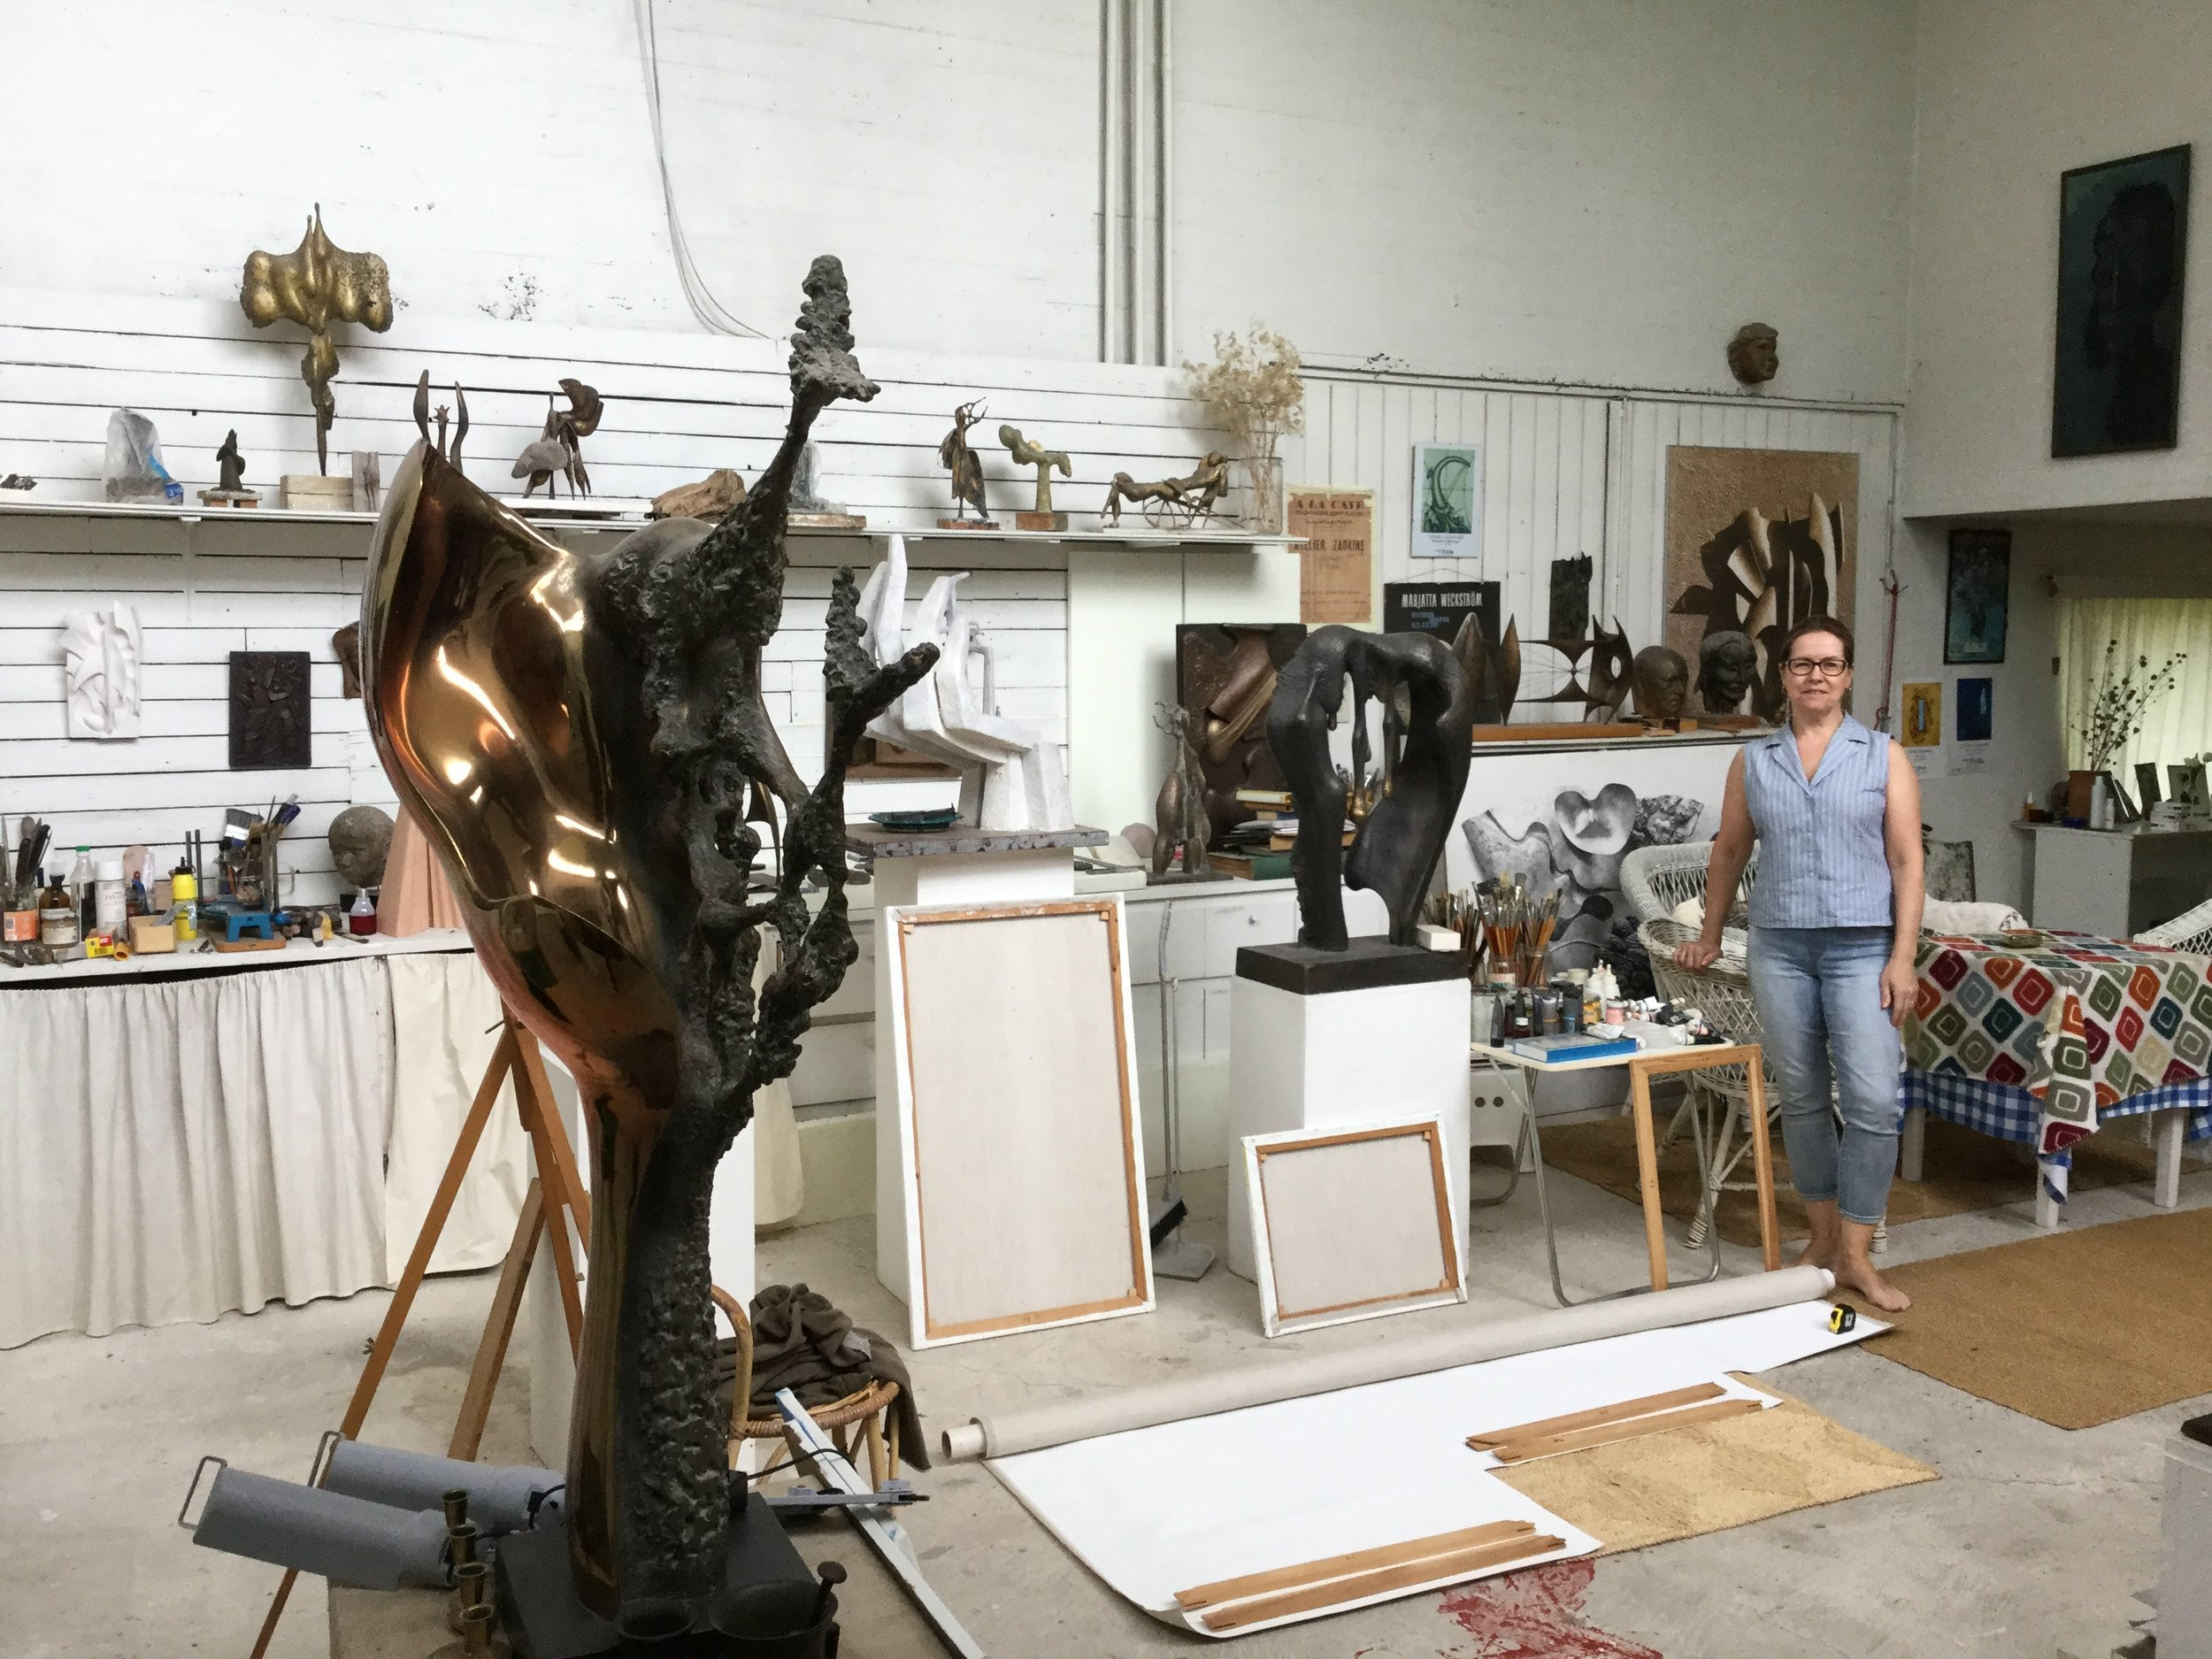 Riikka in her Mom's atelier. The sculptures are so lovely. These days the space is also used by Tuomas, Riikka's brother - the canvases are his.